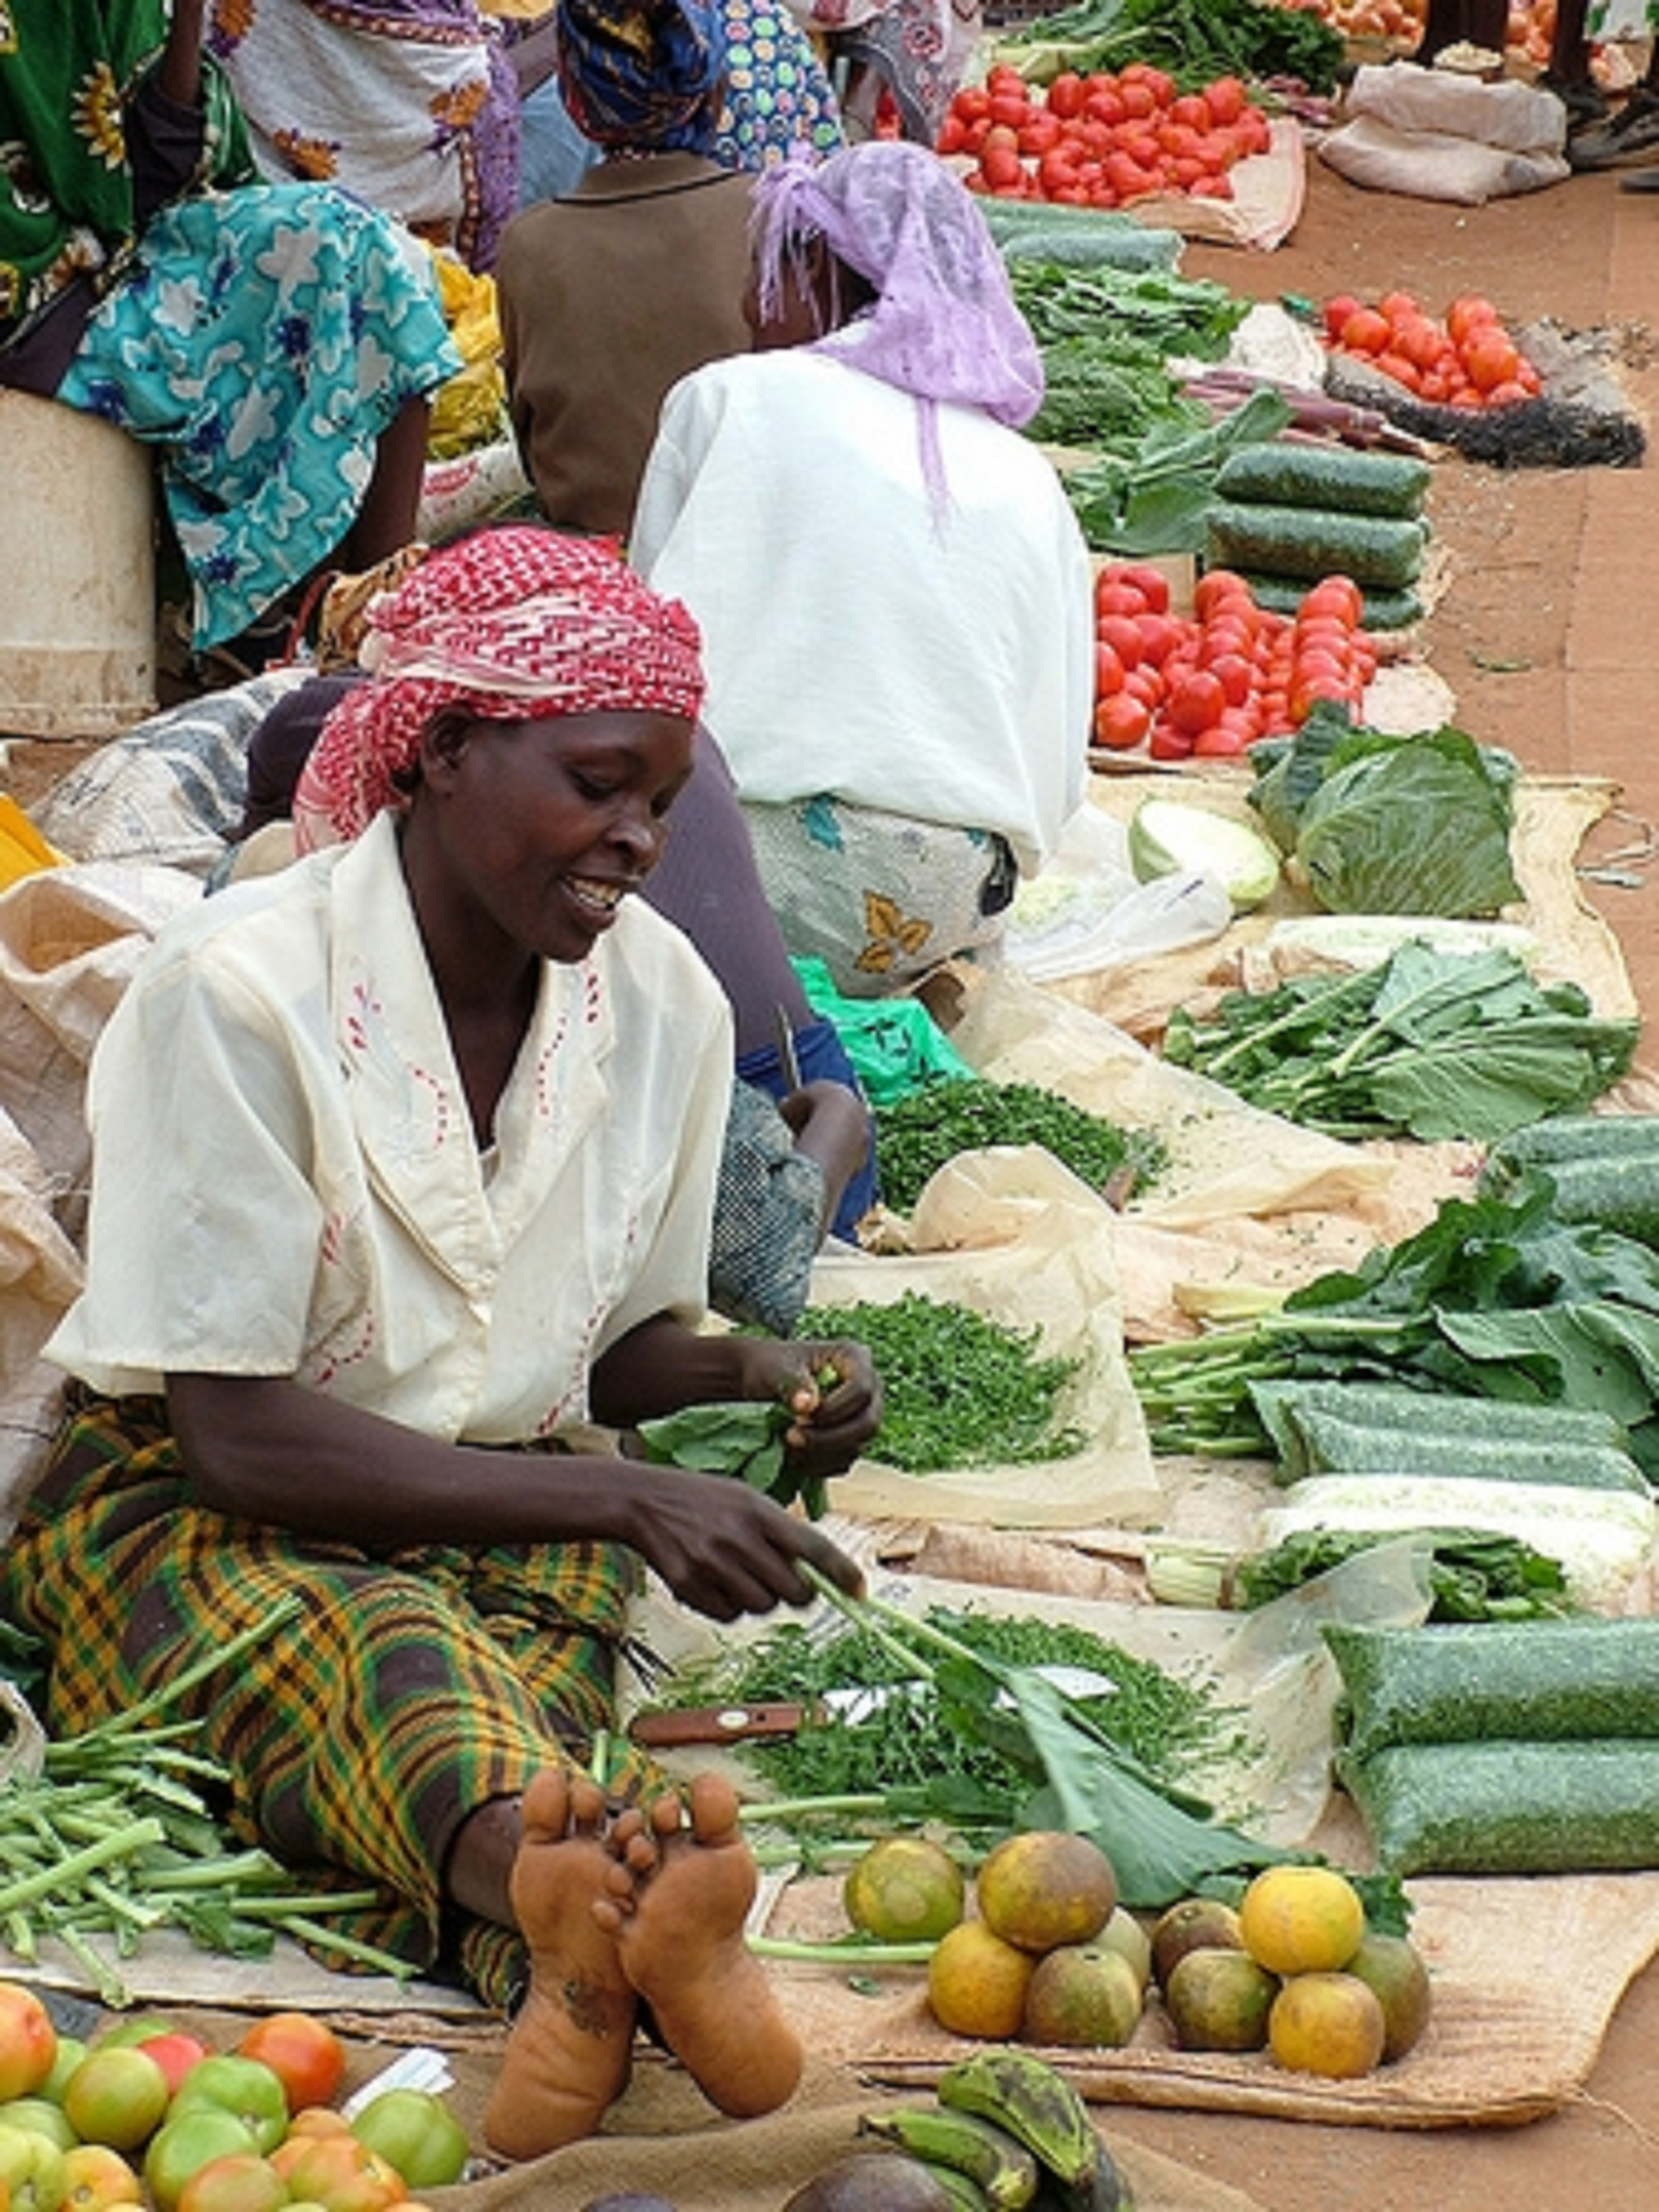 Mama Zubaida, as she is famously known sells vegetables at the open air market in Isiolo Town. [Photo: Malachi Motano]